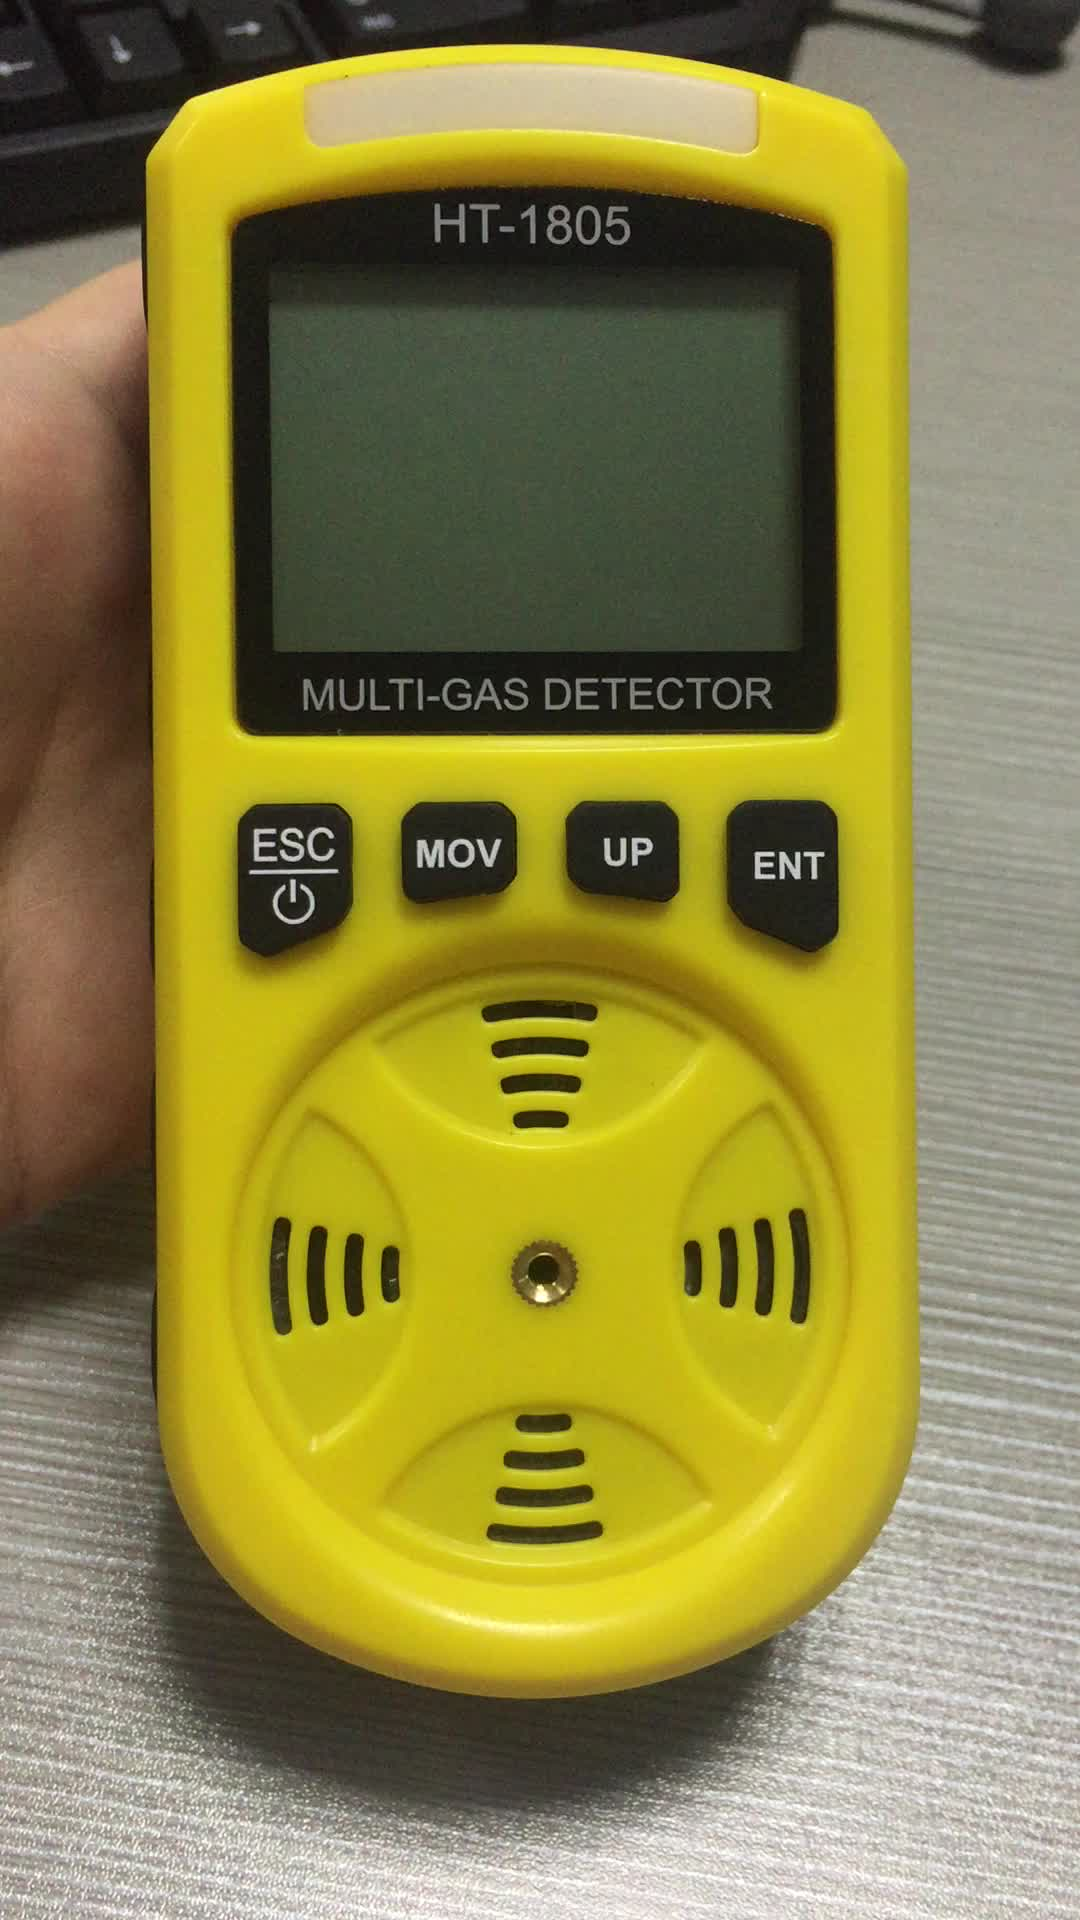 HT-1805 Combustible Gas/H2S/CO/O2 4 IN 1 Portable Gas Detector